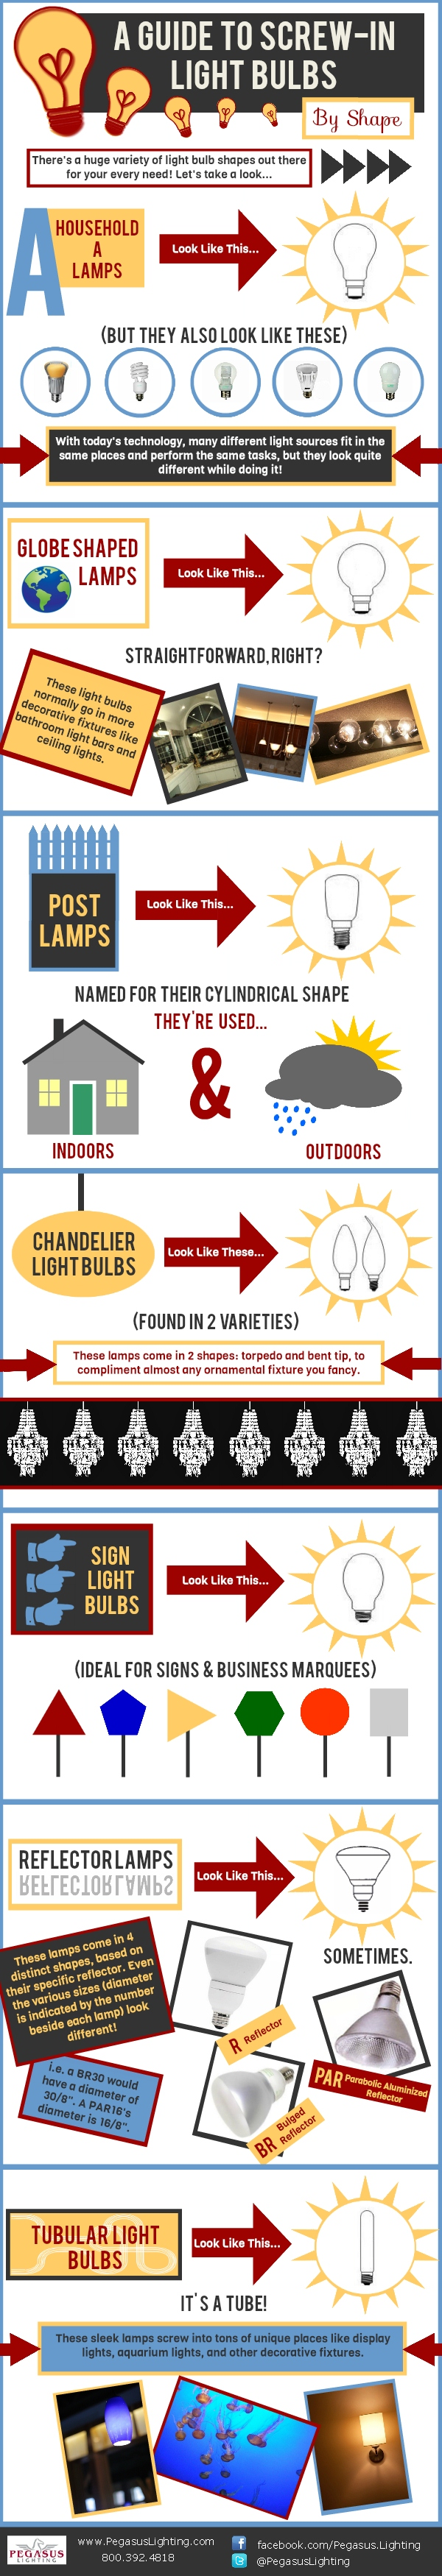 A Guide To Screw-In Light Bulbs By Shape